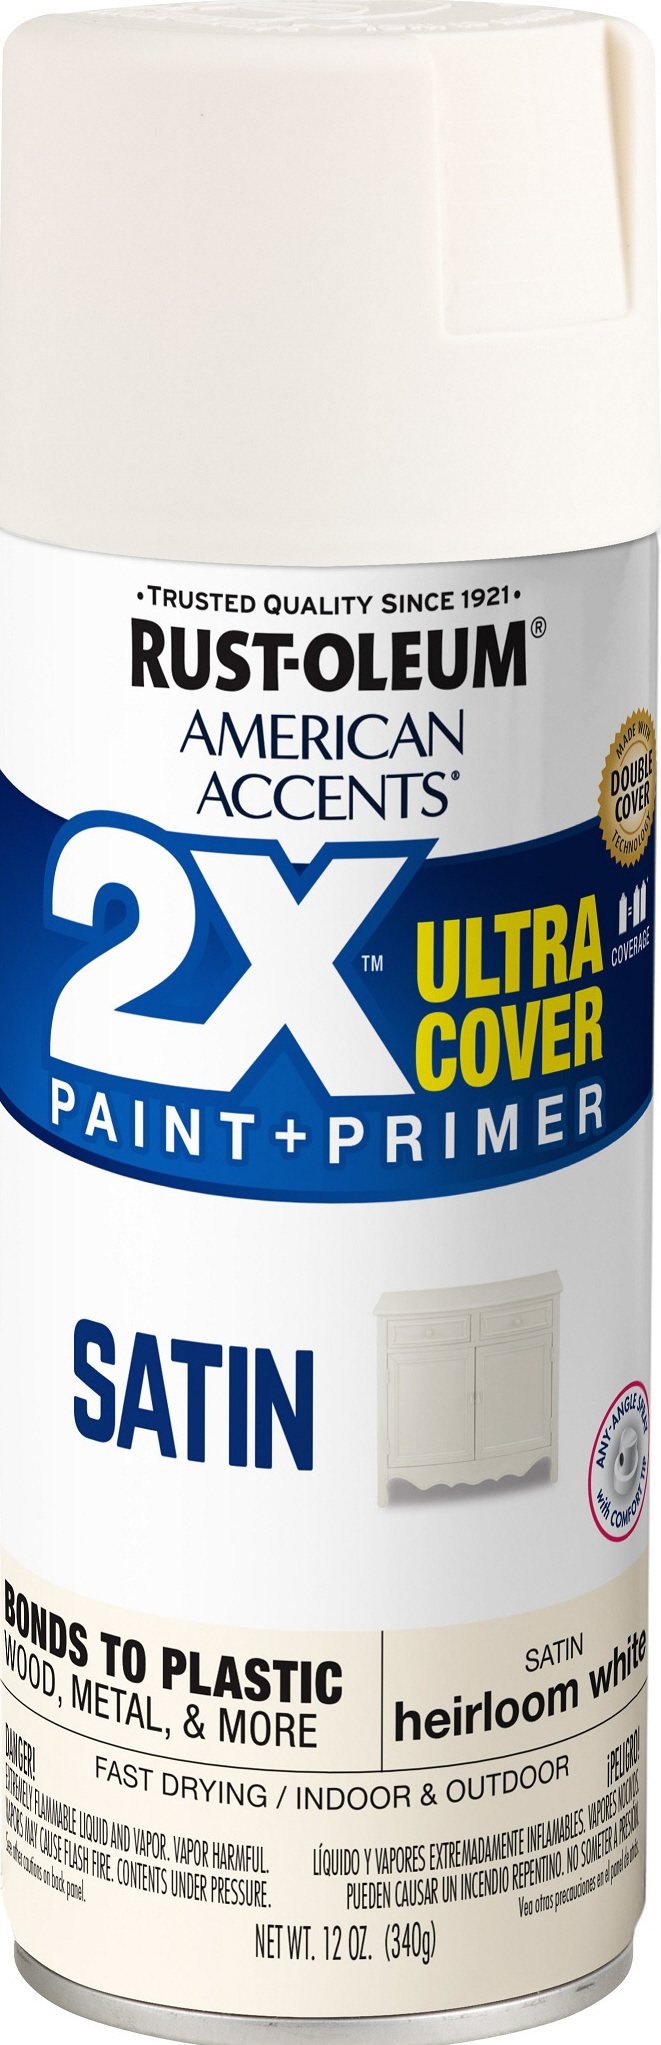 (3 Pack) Rust-Oleum American Accents Ultra Cover 2X Satin Heirloom White Spray Paint and Primer in 1, 12 oz